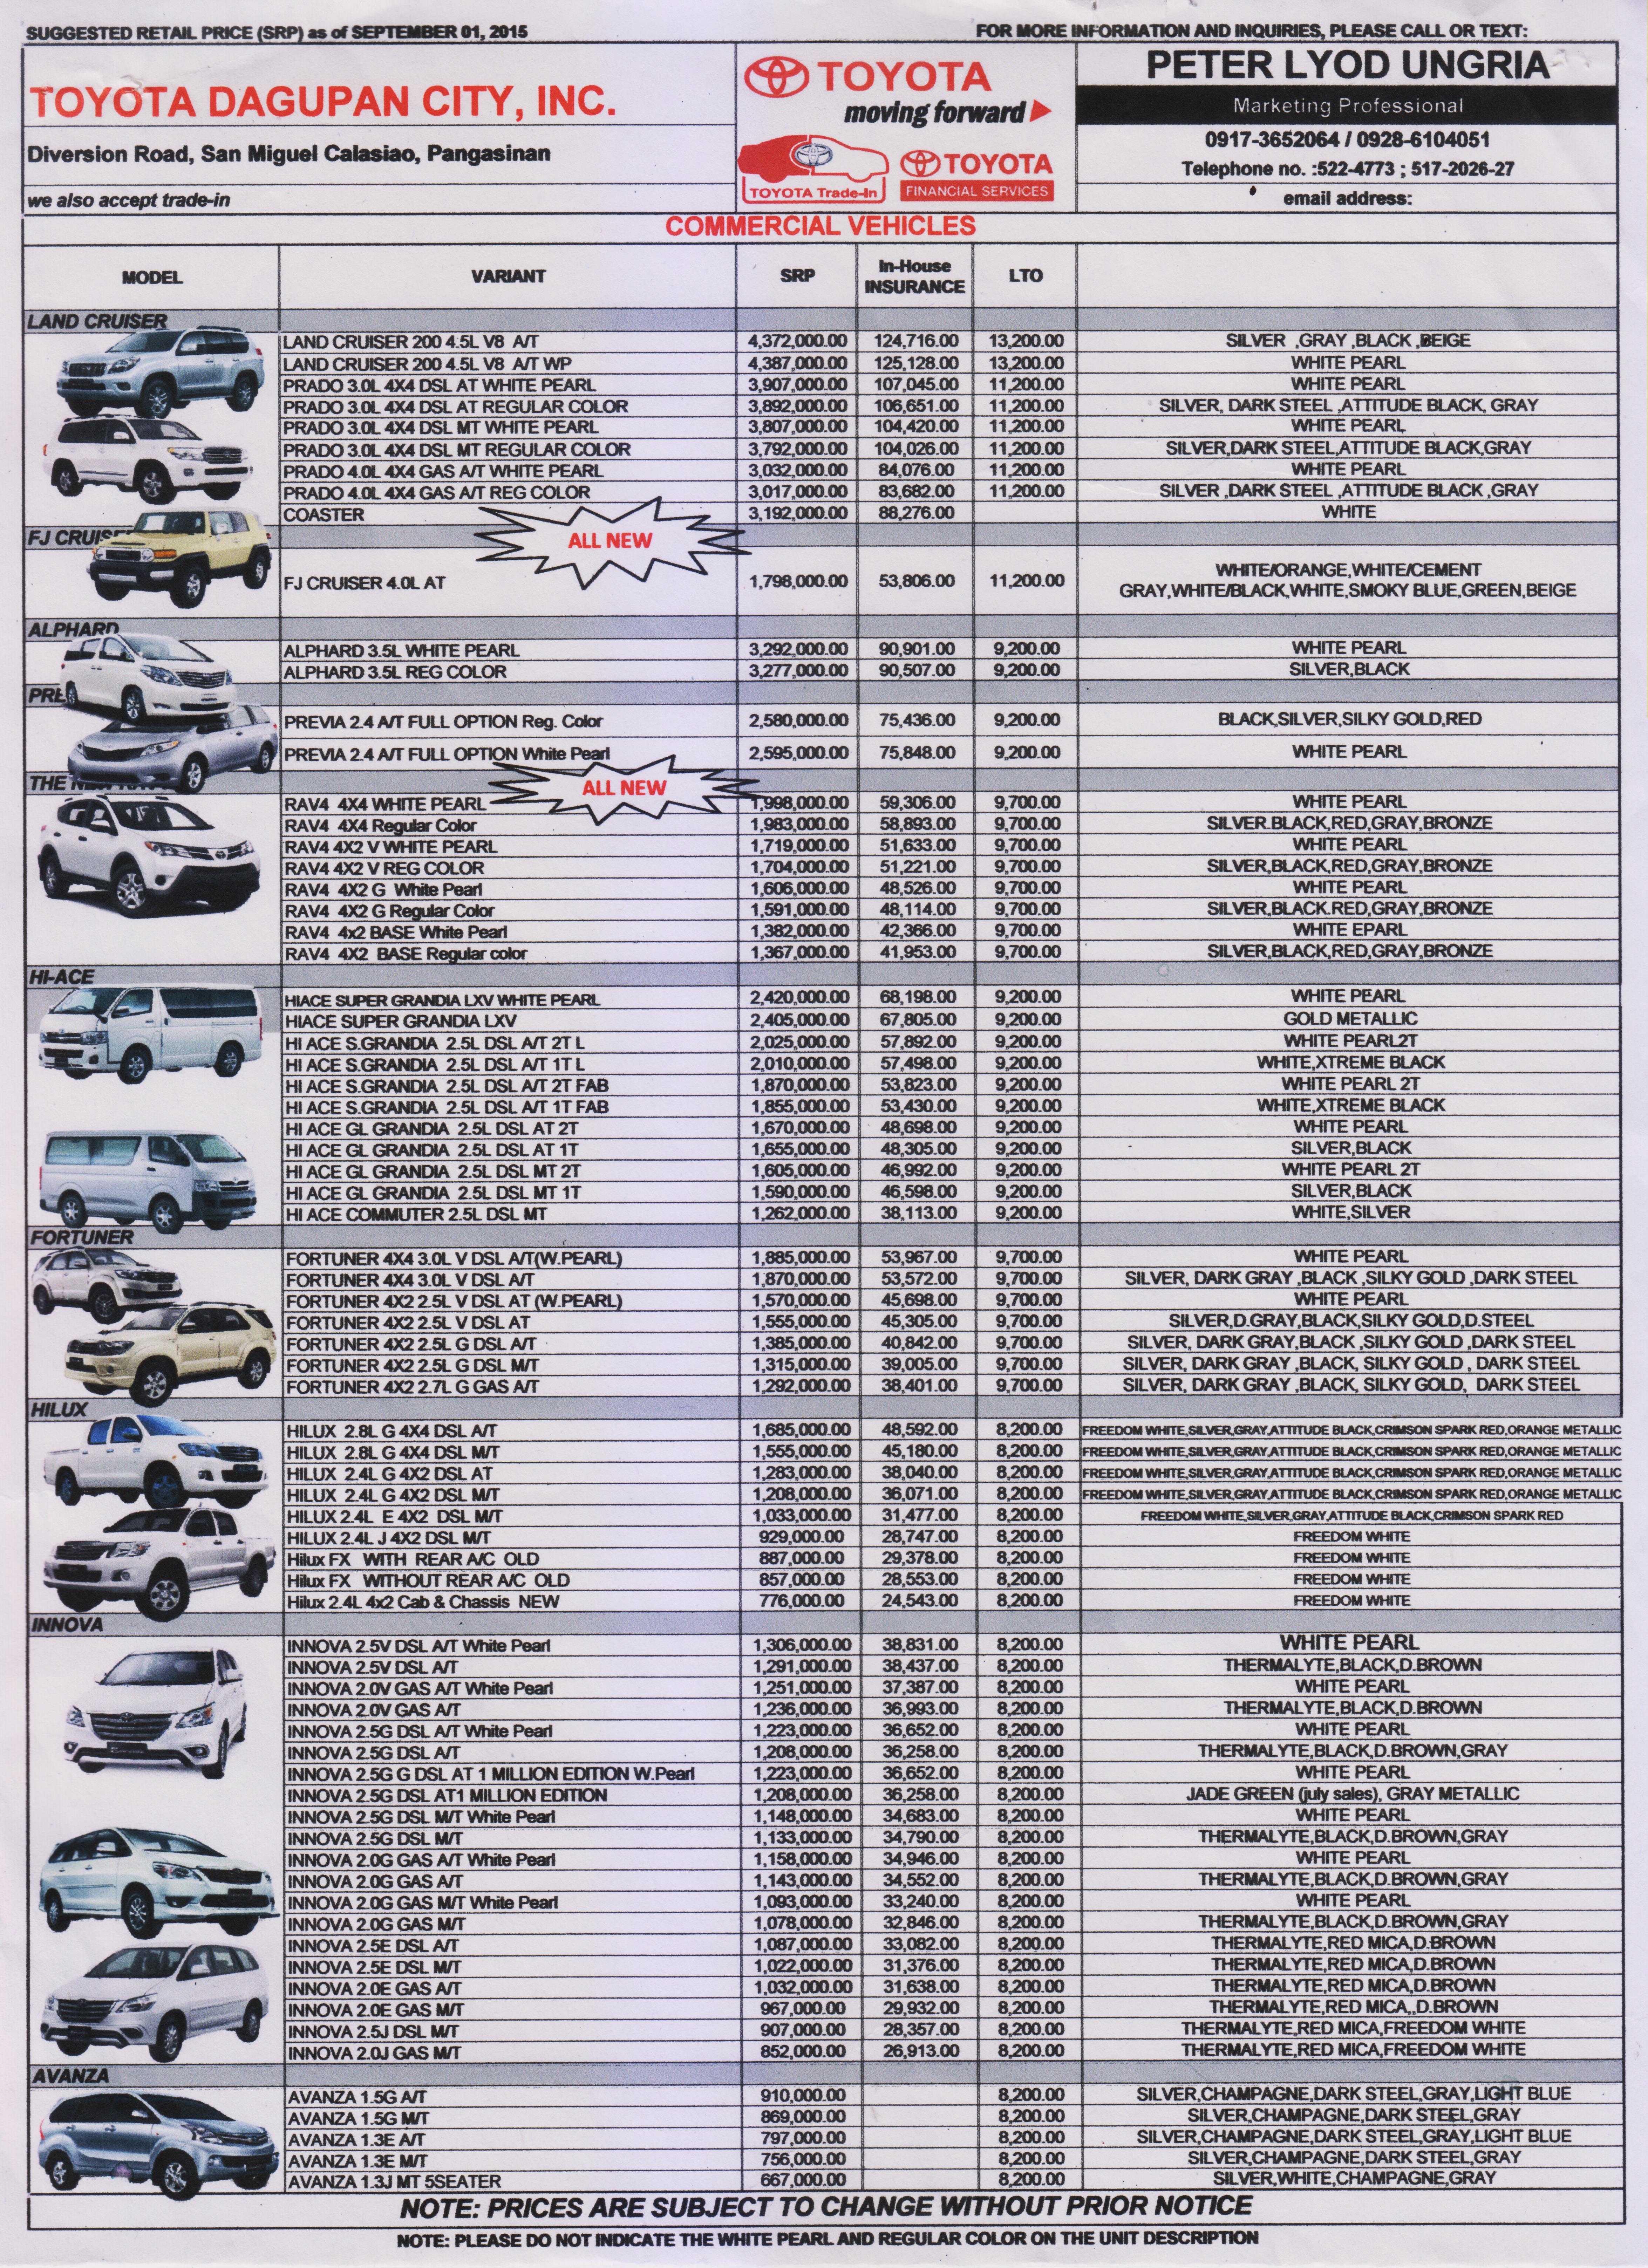 Toyota dagaupan city inc peter lyod c ungria 0917 3652064 0928